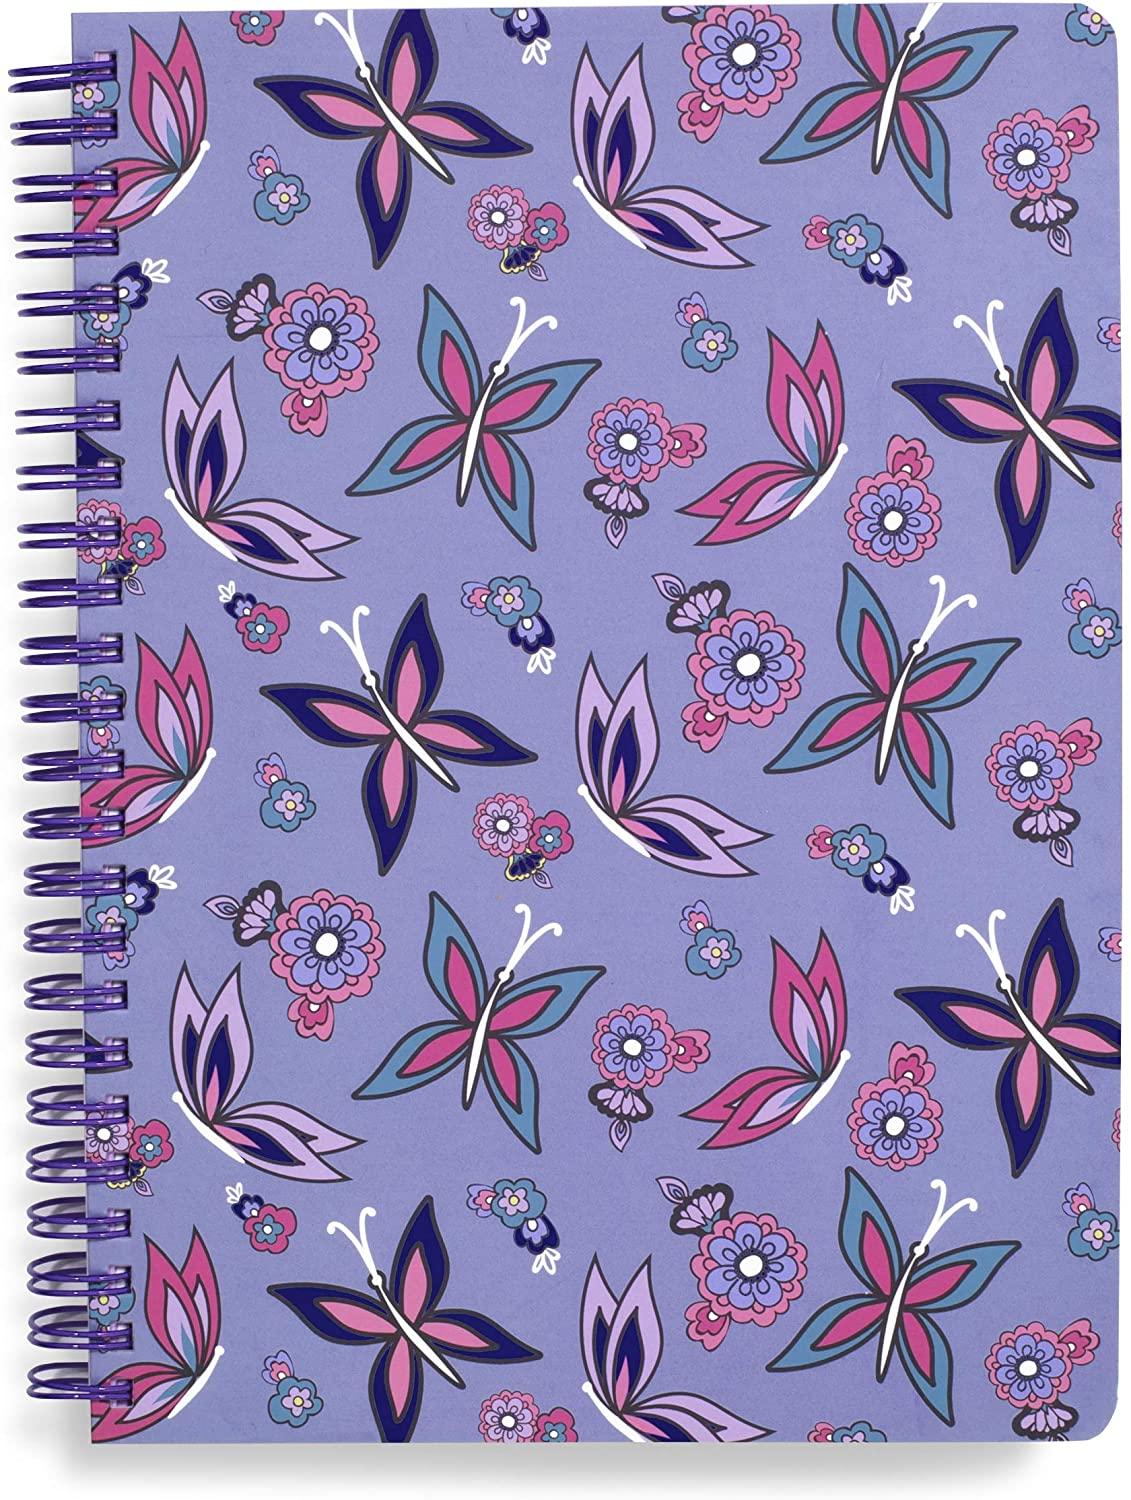 Vera Bradley Purple Butterfly Mini Spiral Notebook, 8.25 x 6.25 with Pocket and 160 Lined Pages, Makani Paisley